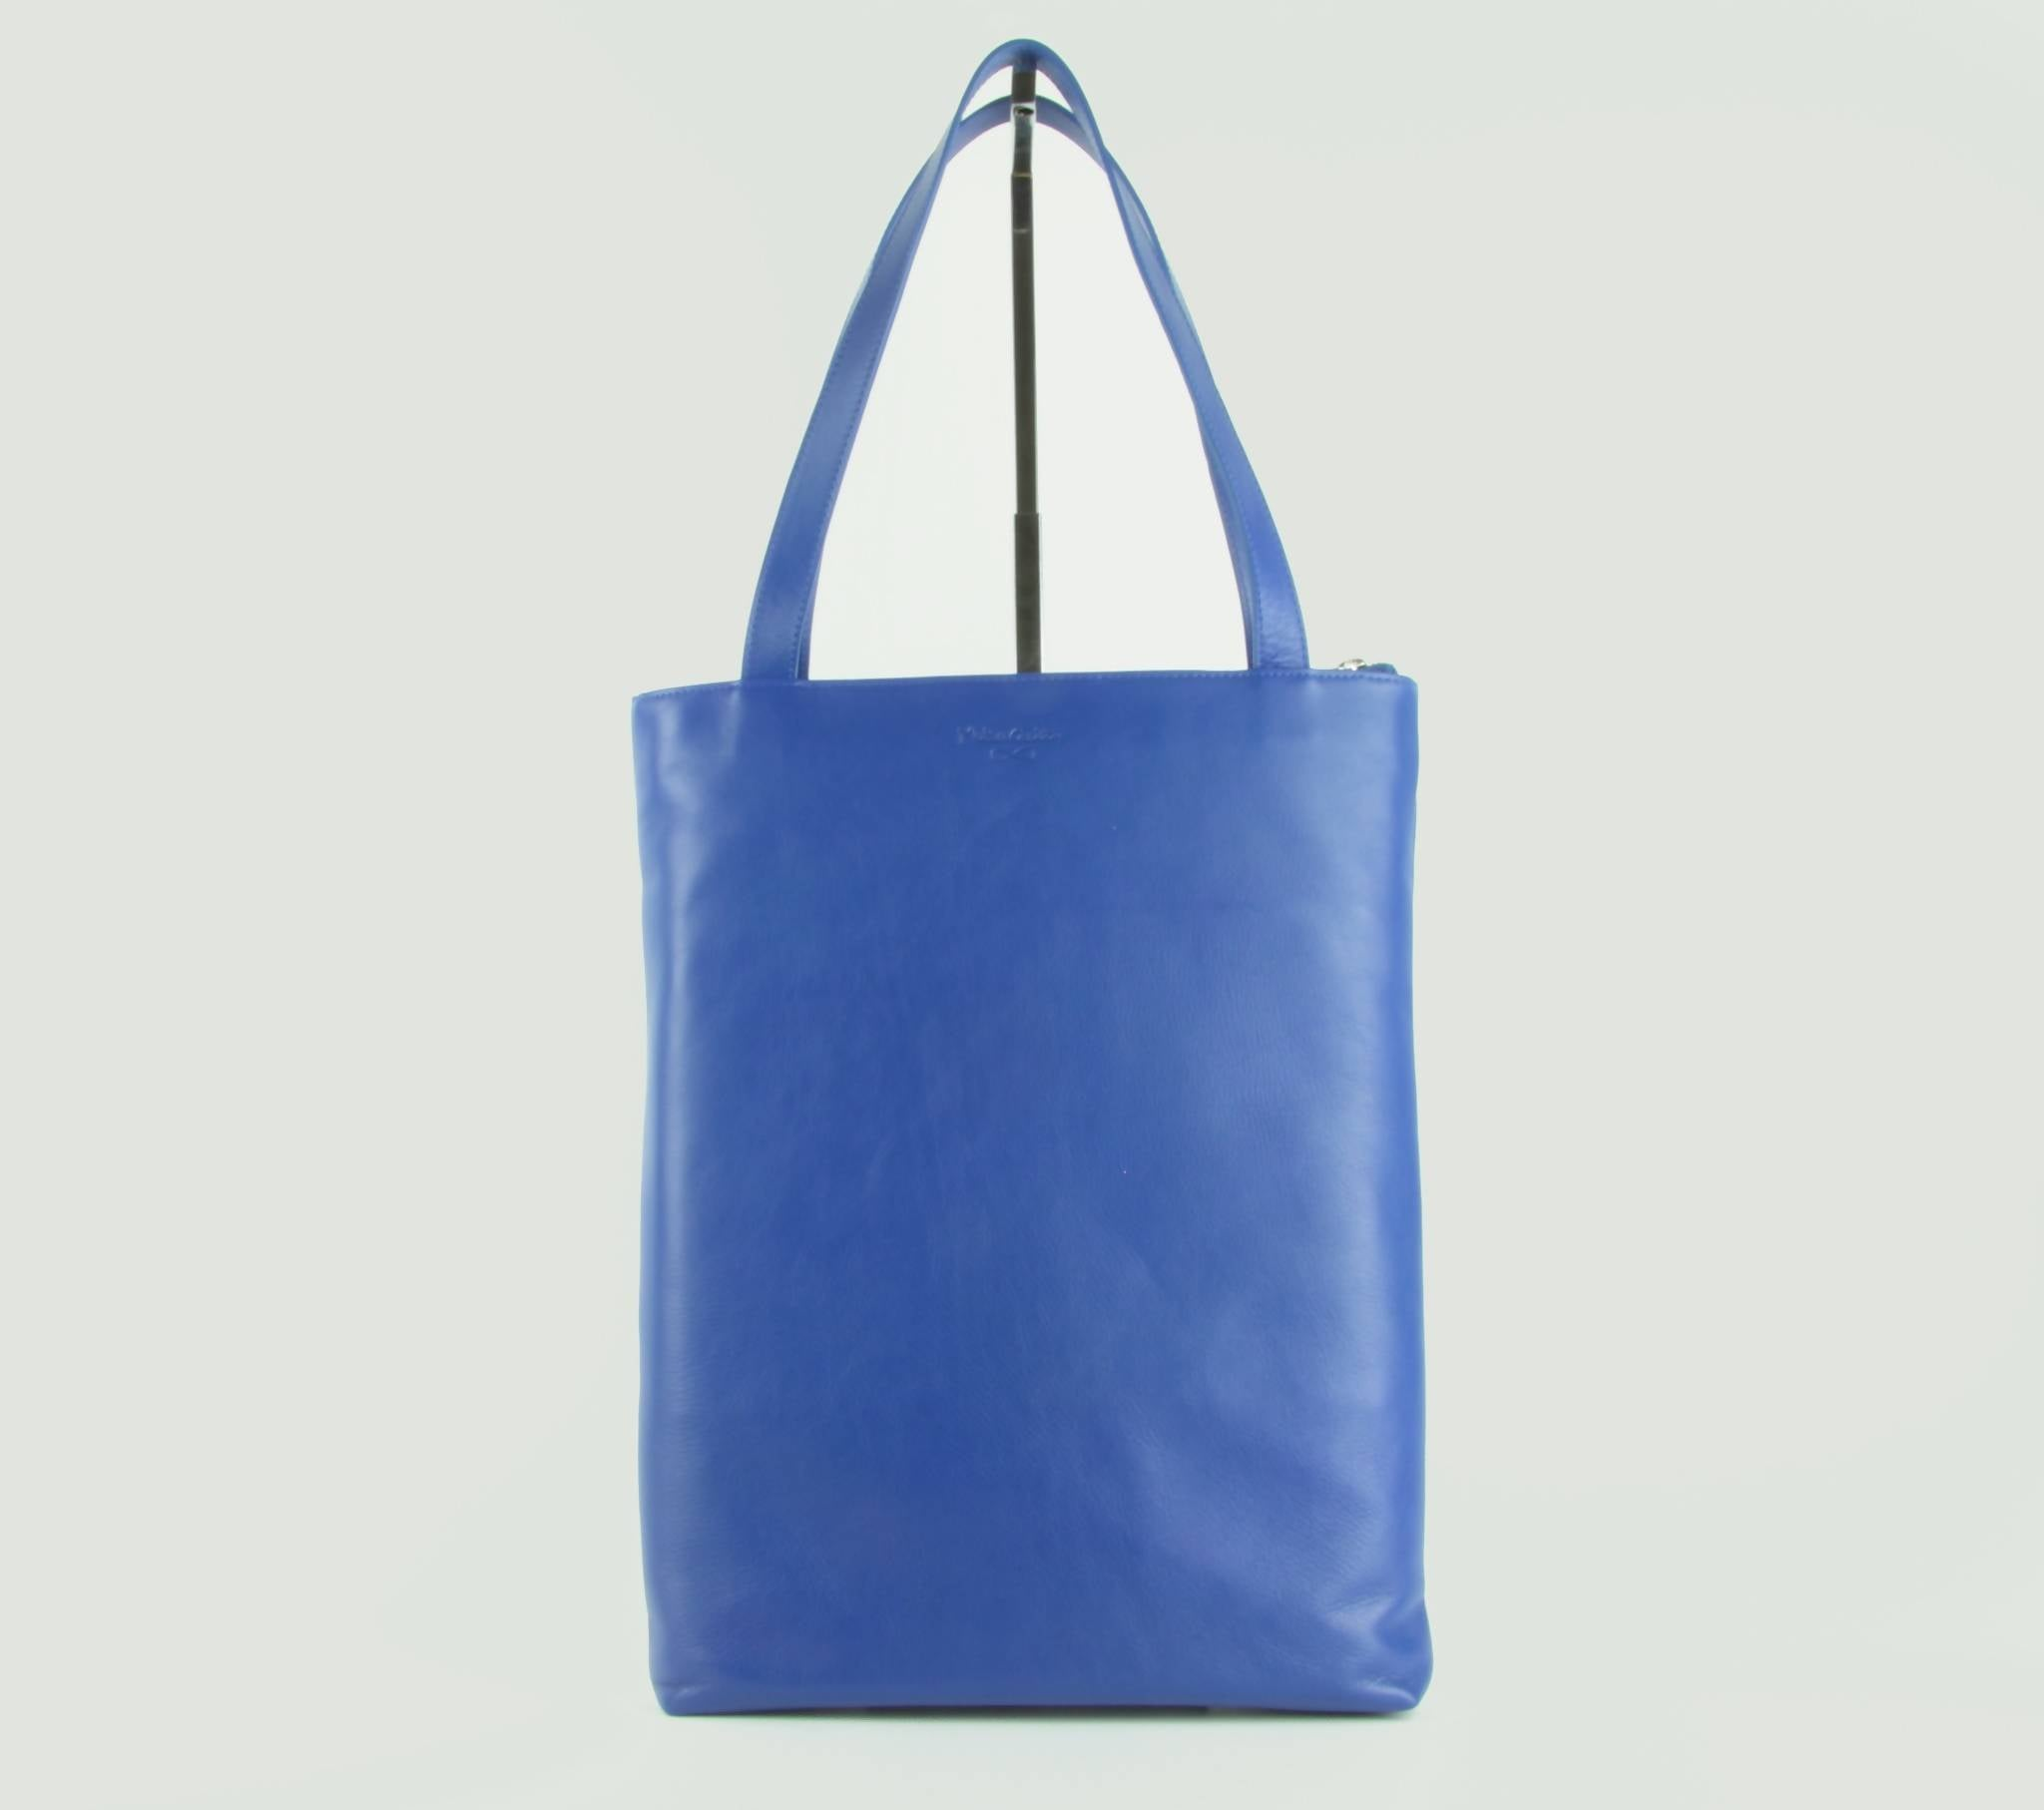 Tote bag Makona blue / Laptopbag